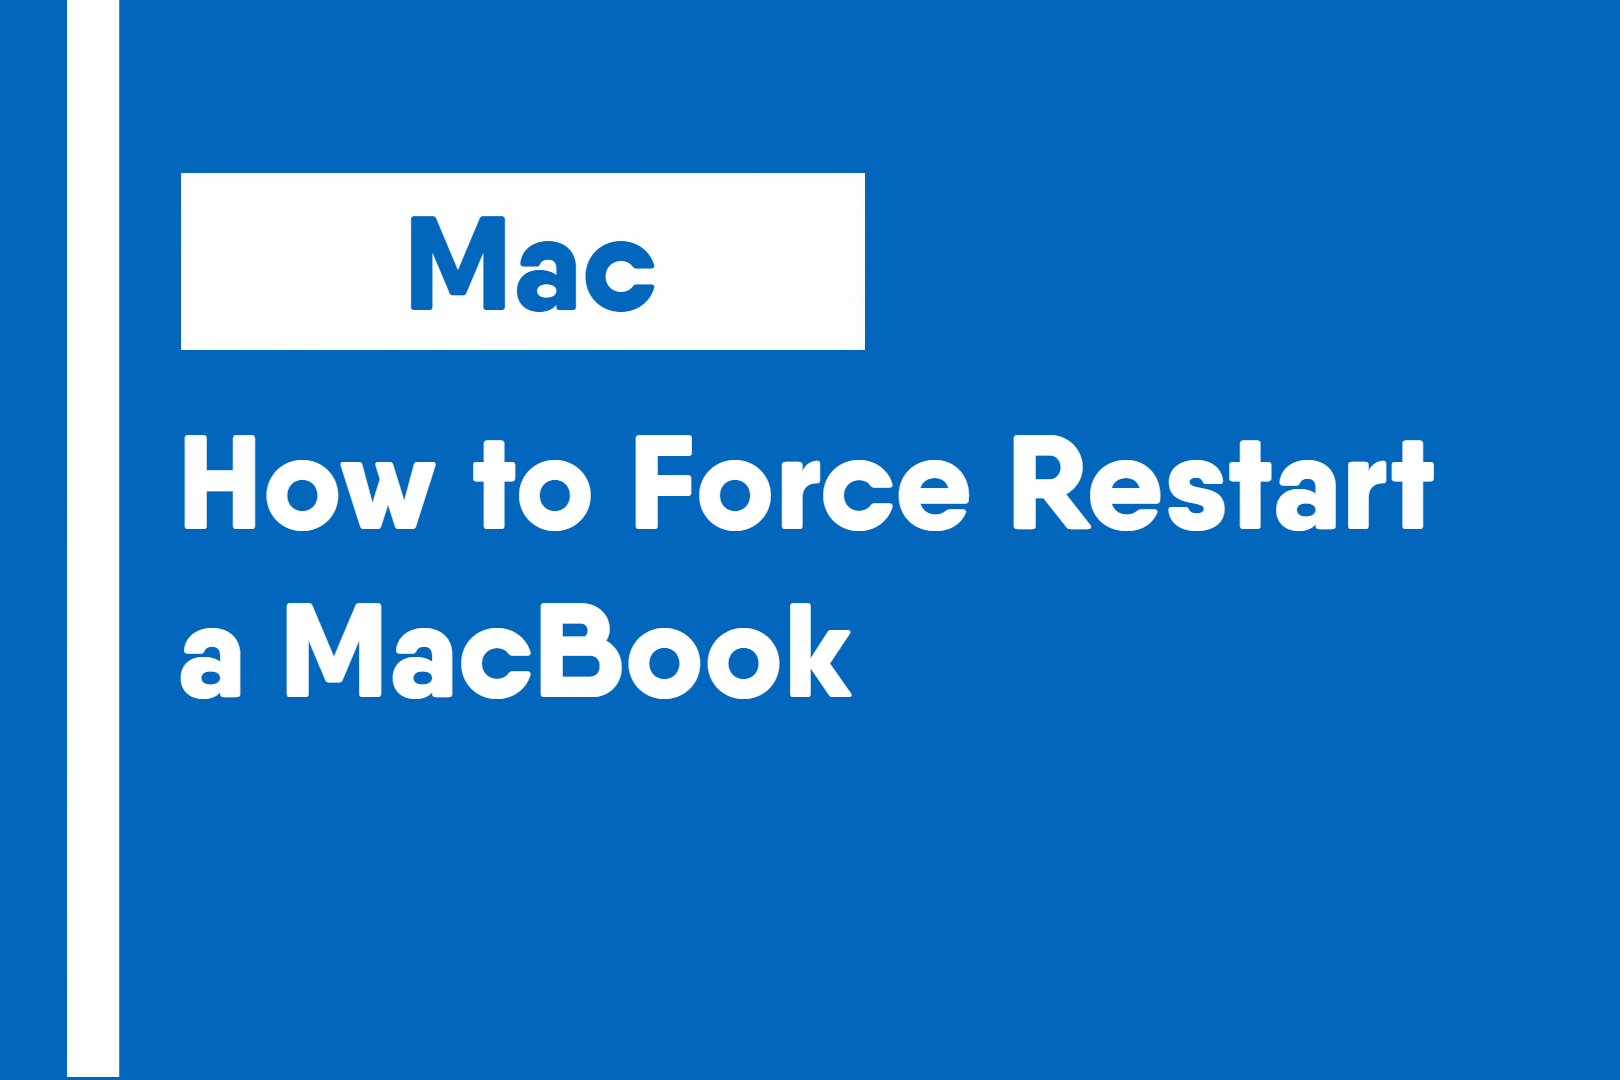 How to Force Restart a MacBook